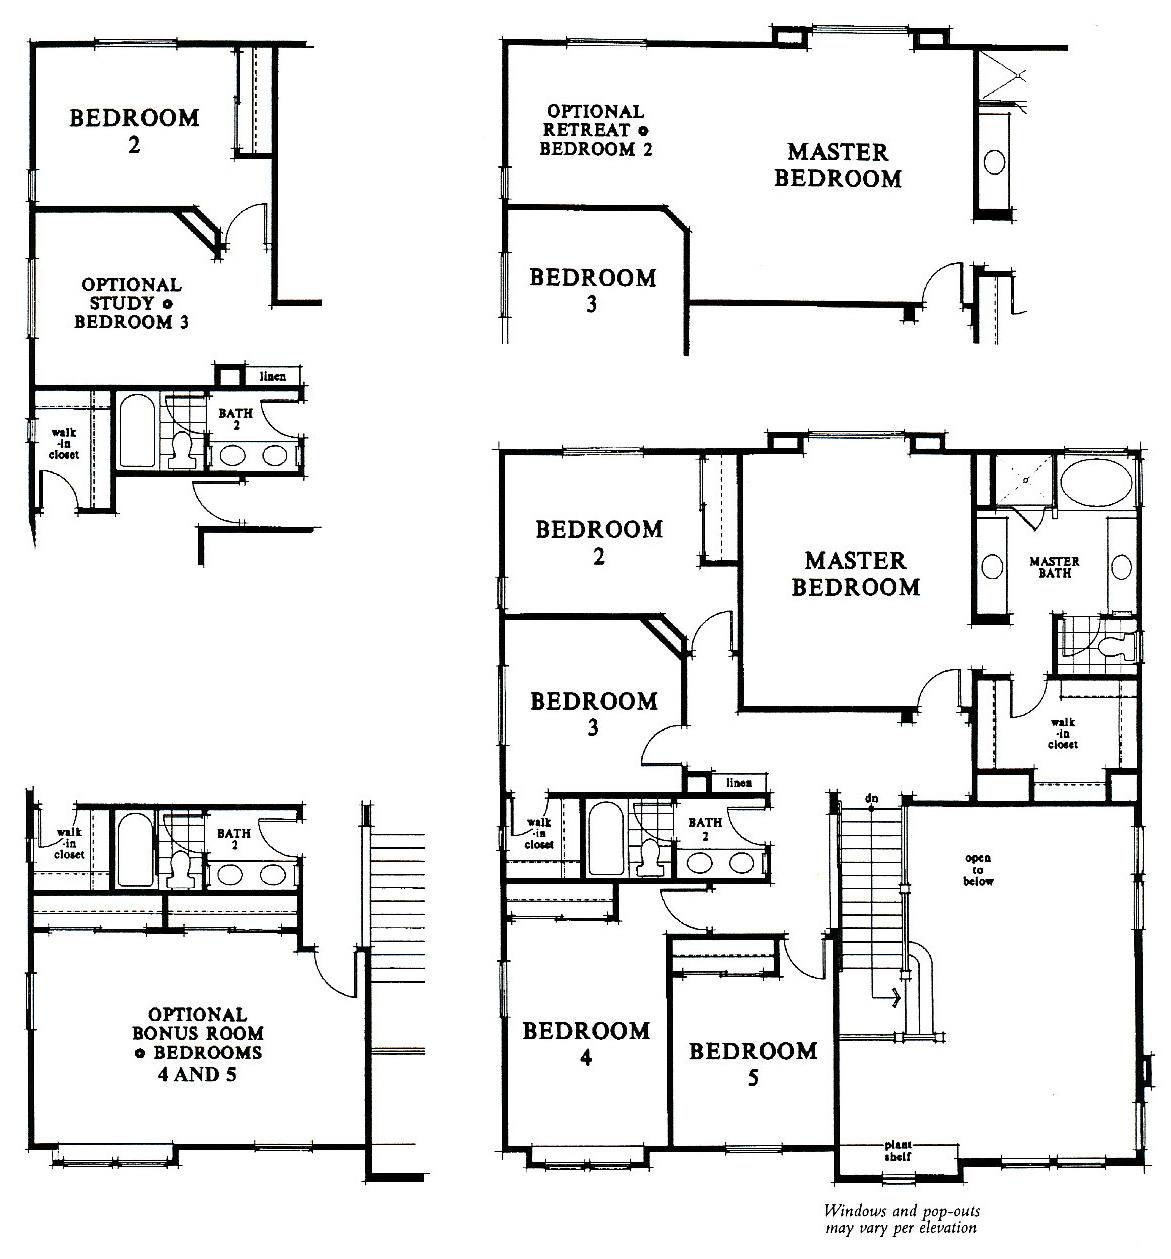 Olf4q moreover Summer Glen Floor Plans Dublin Ca furthermore 5962 together with Nna S Bret Ave Coeur Dalene ID 83814 M23092 24986 moreover Deviantart More Like My Other Idea For My Tr  St  By. on kelly realtor